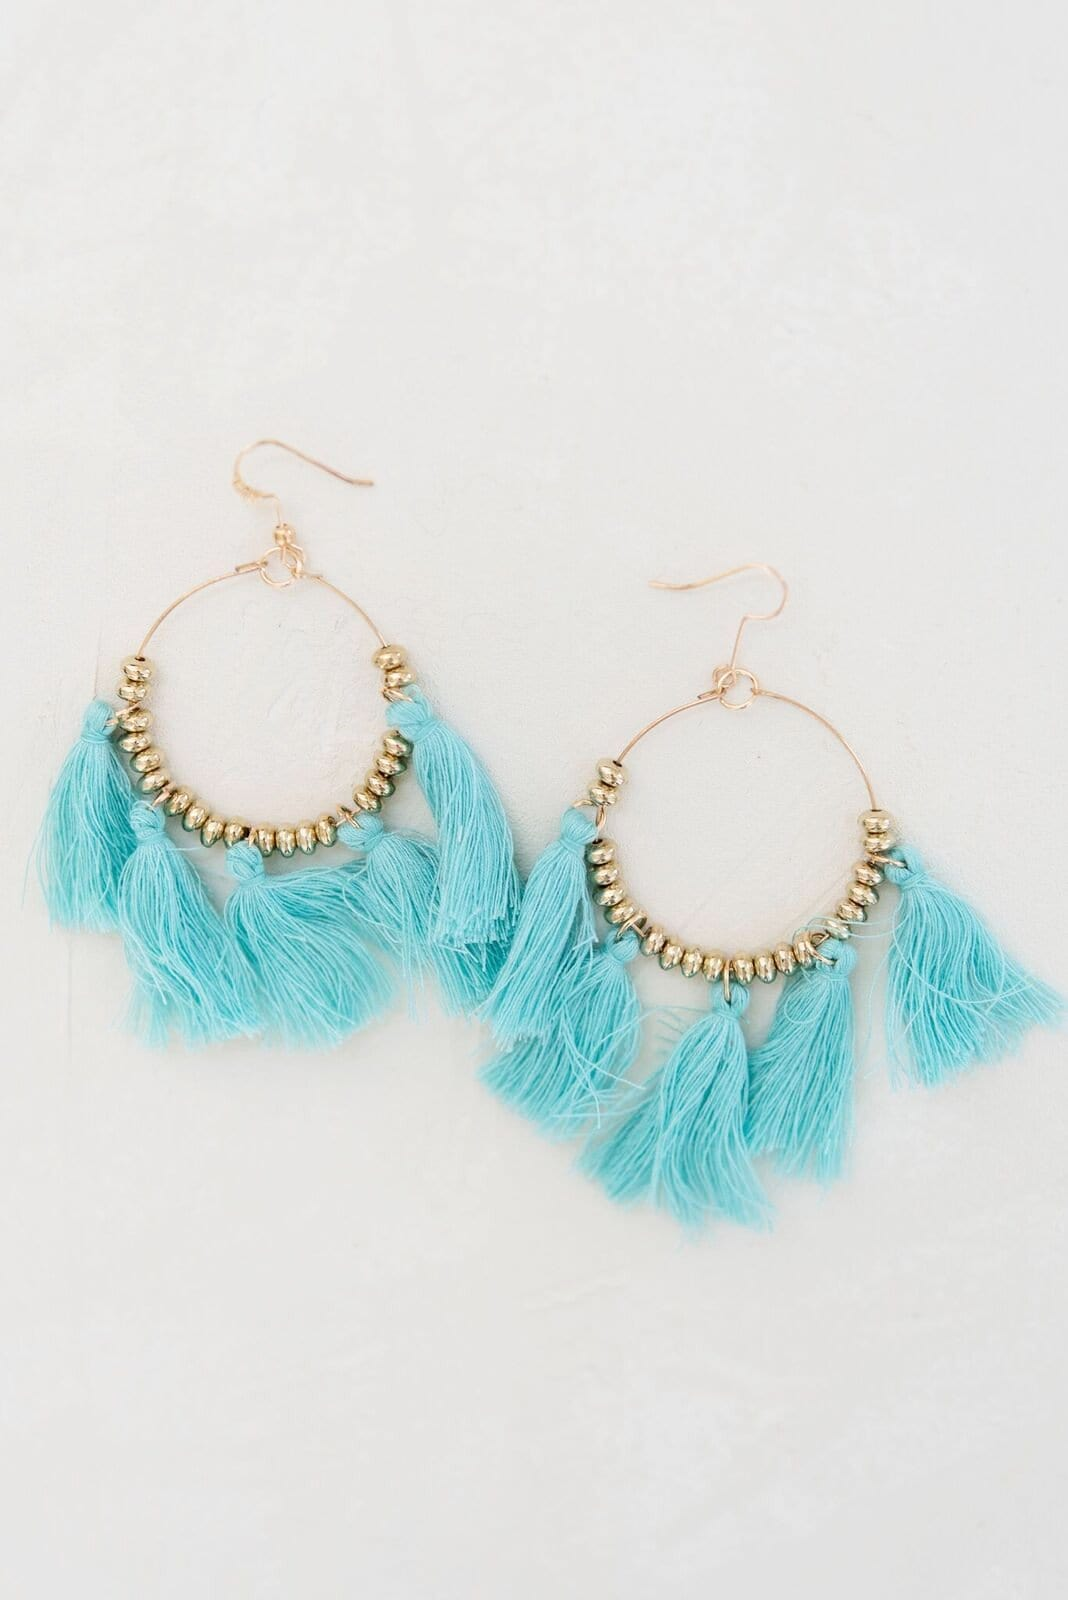 Steal The Show Tassel Earrings - Mint